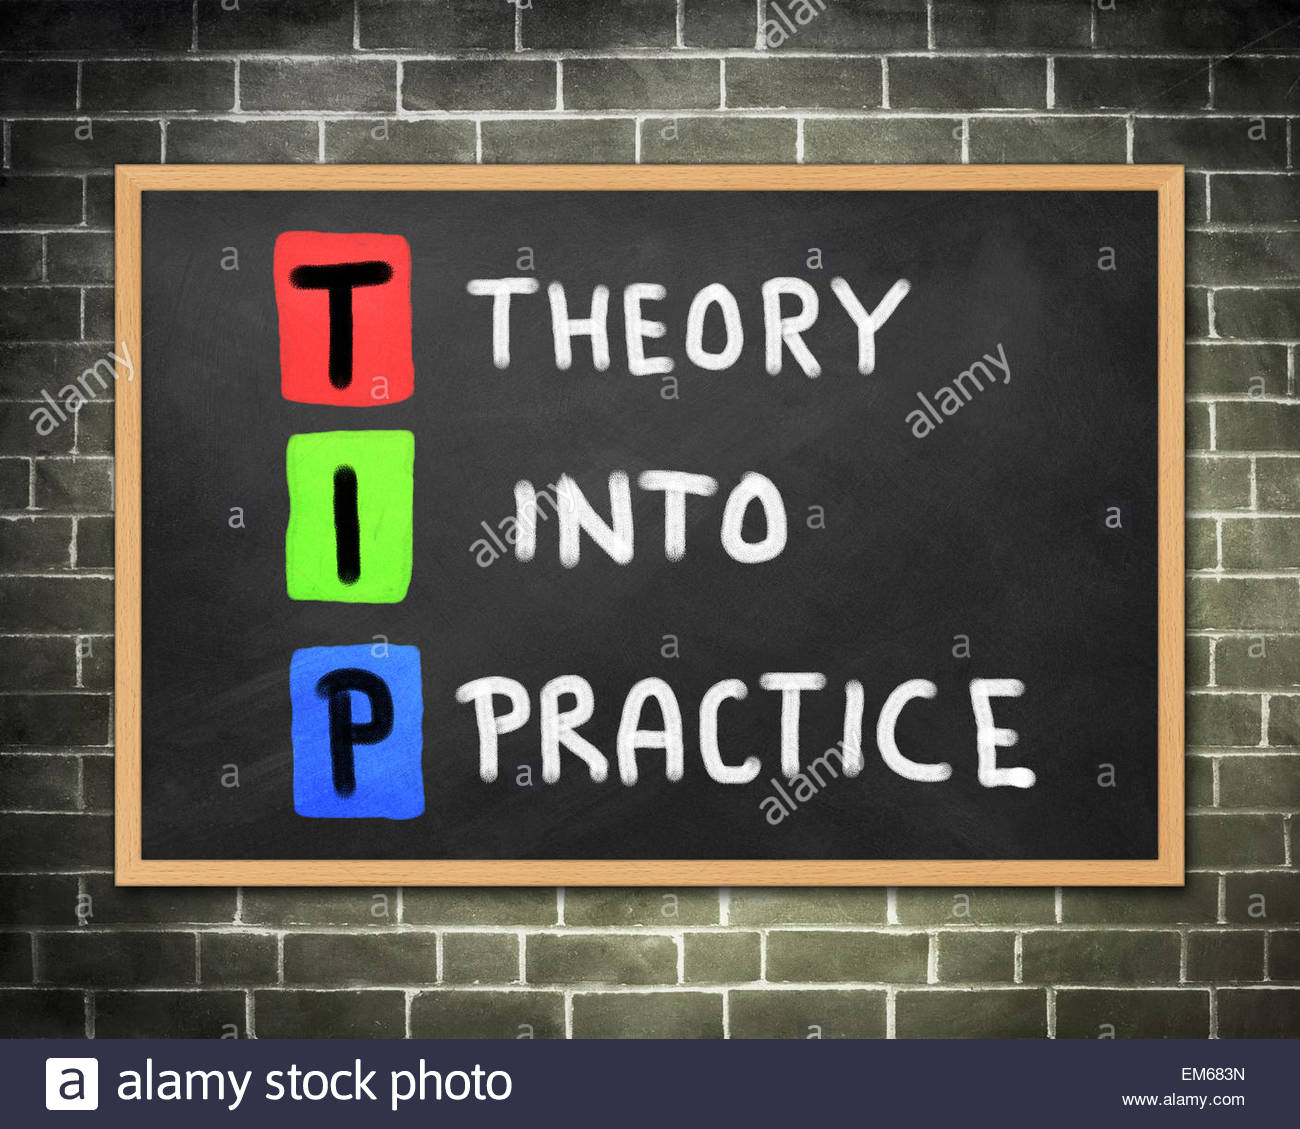 THEORY INTO PRACTICE - Stock Image